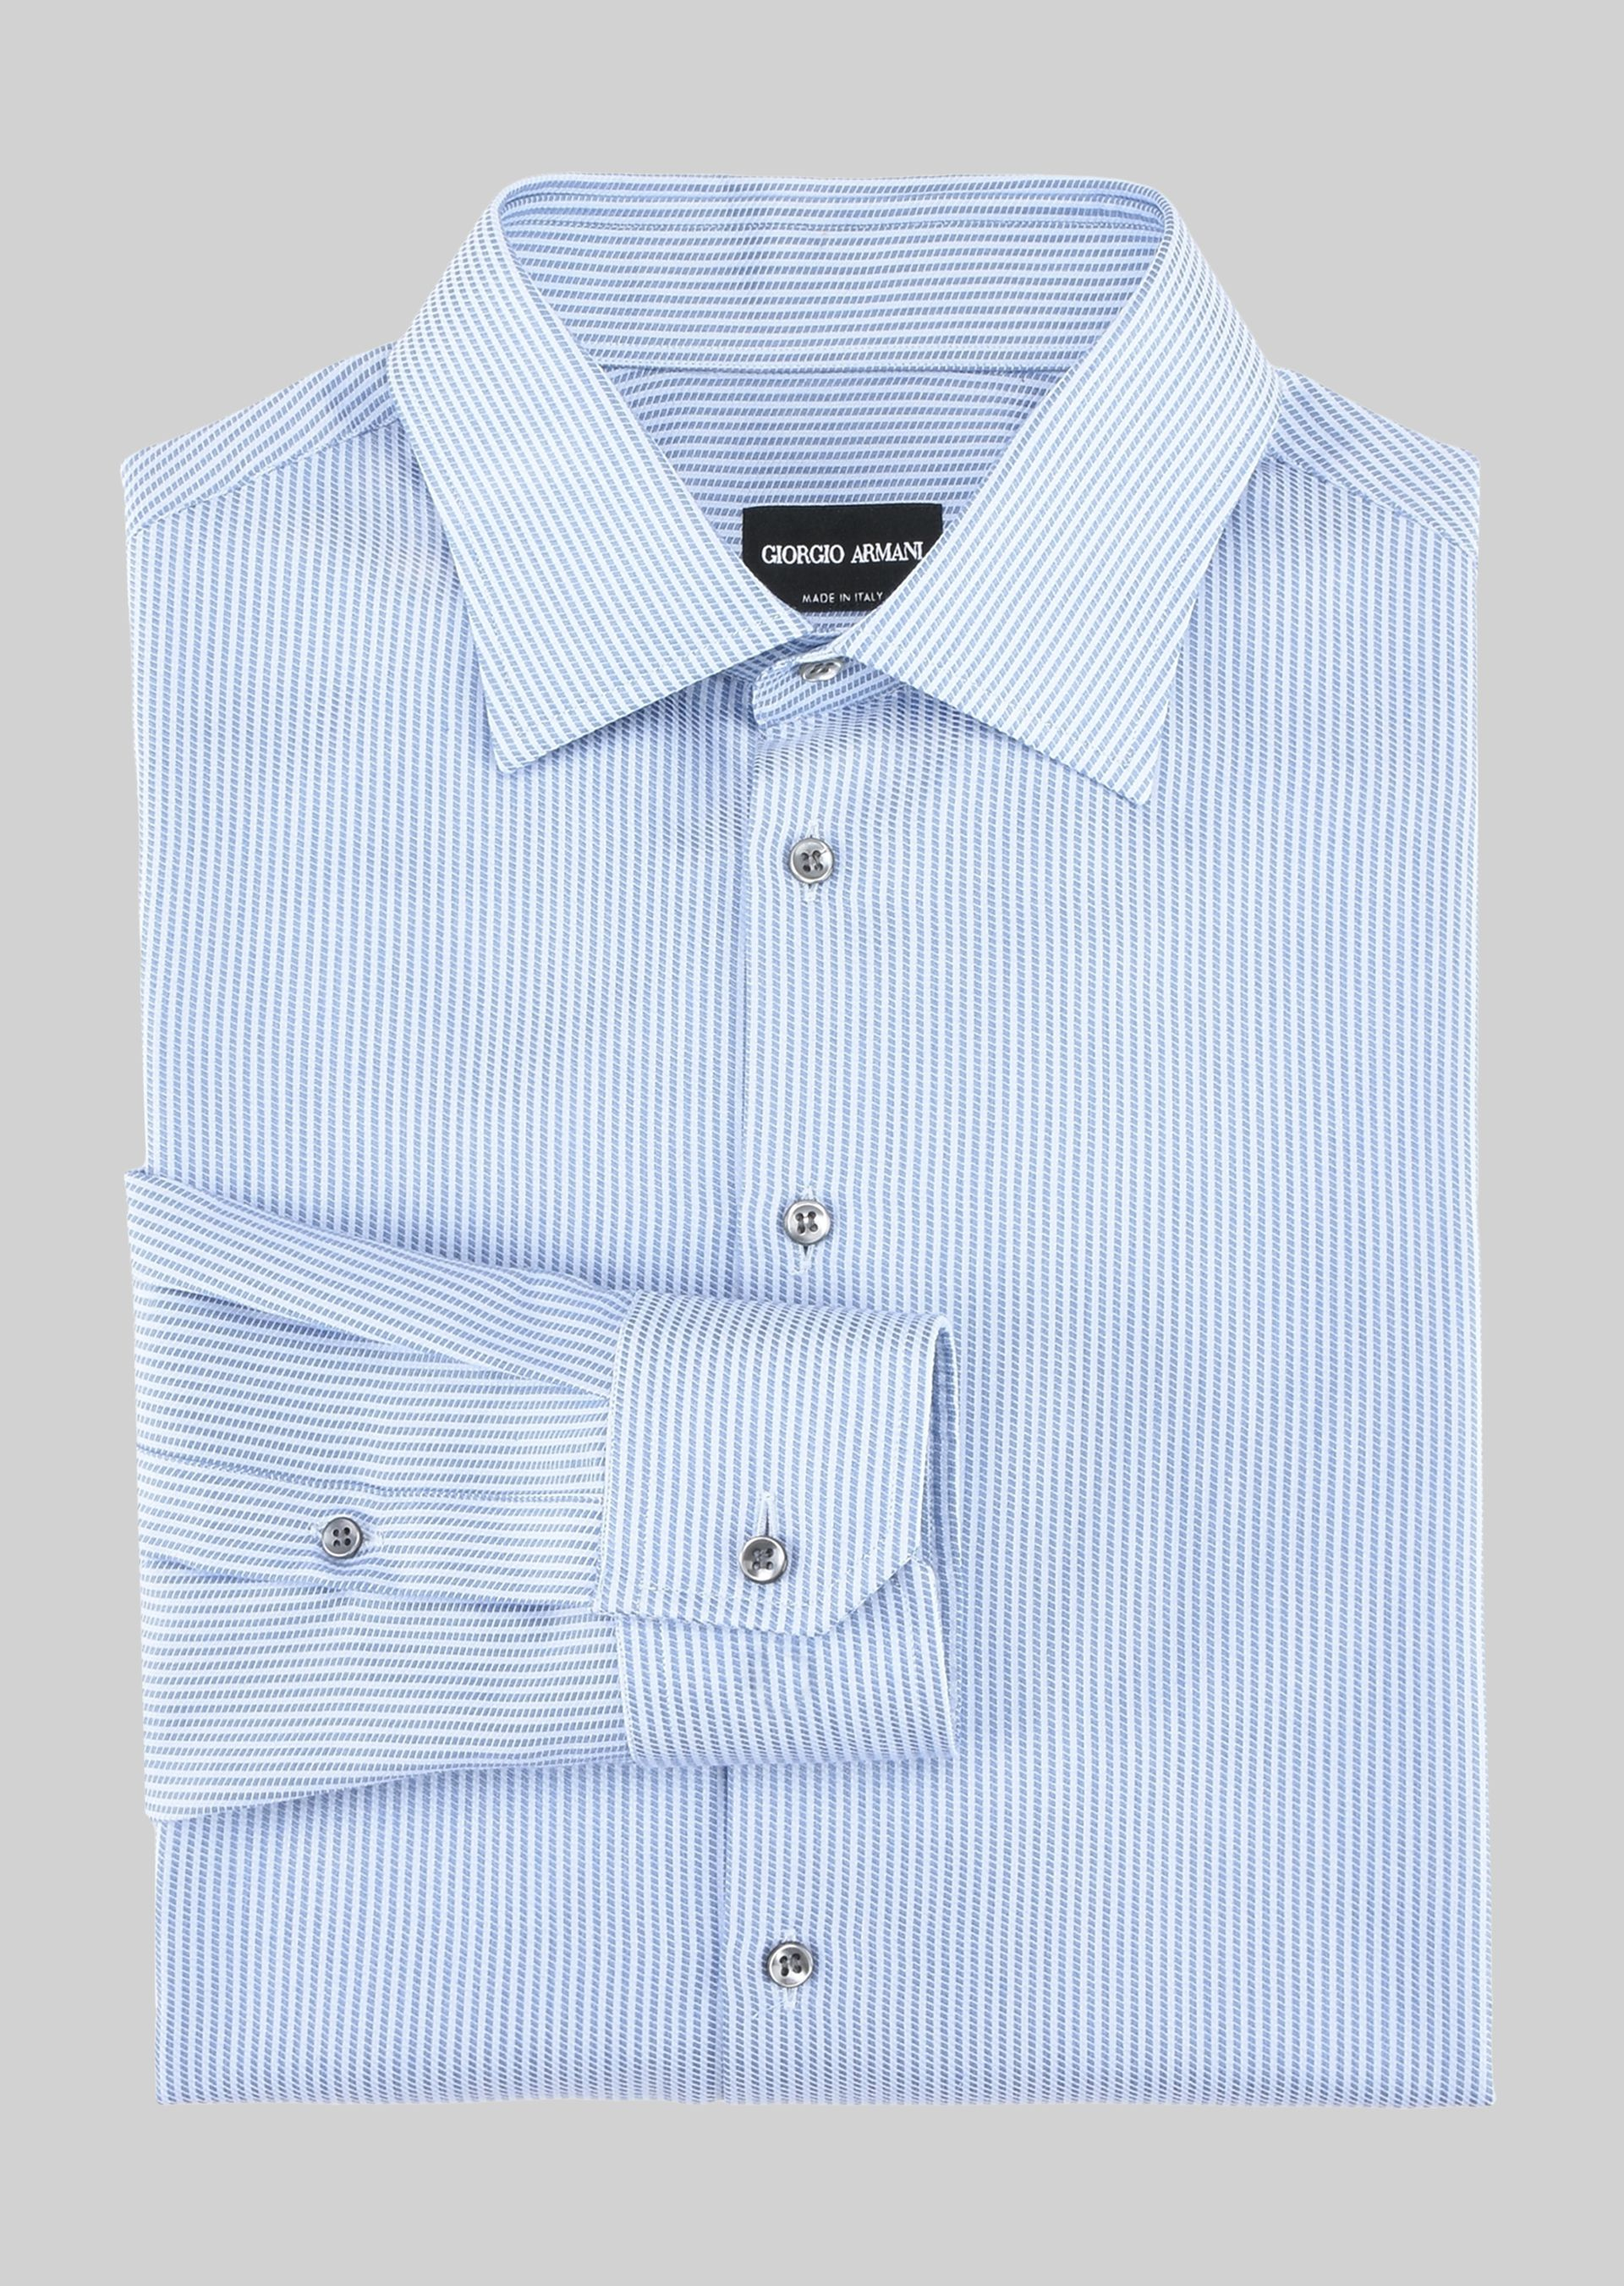 GIORGIO ARMANI FRENCH COLLAR COTTON SHIRT Classic Shirt U r